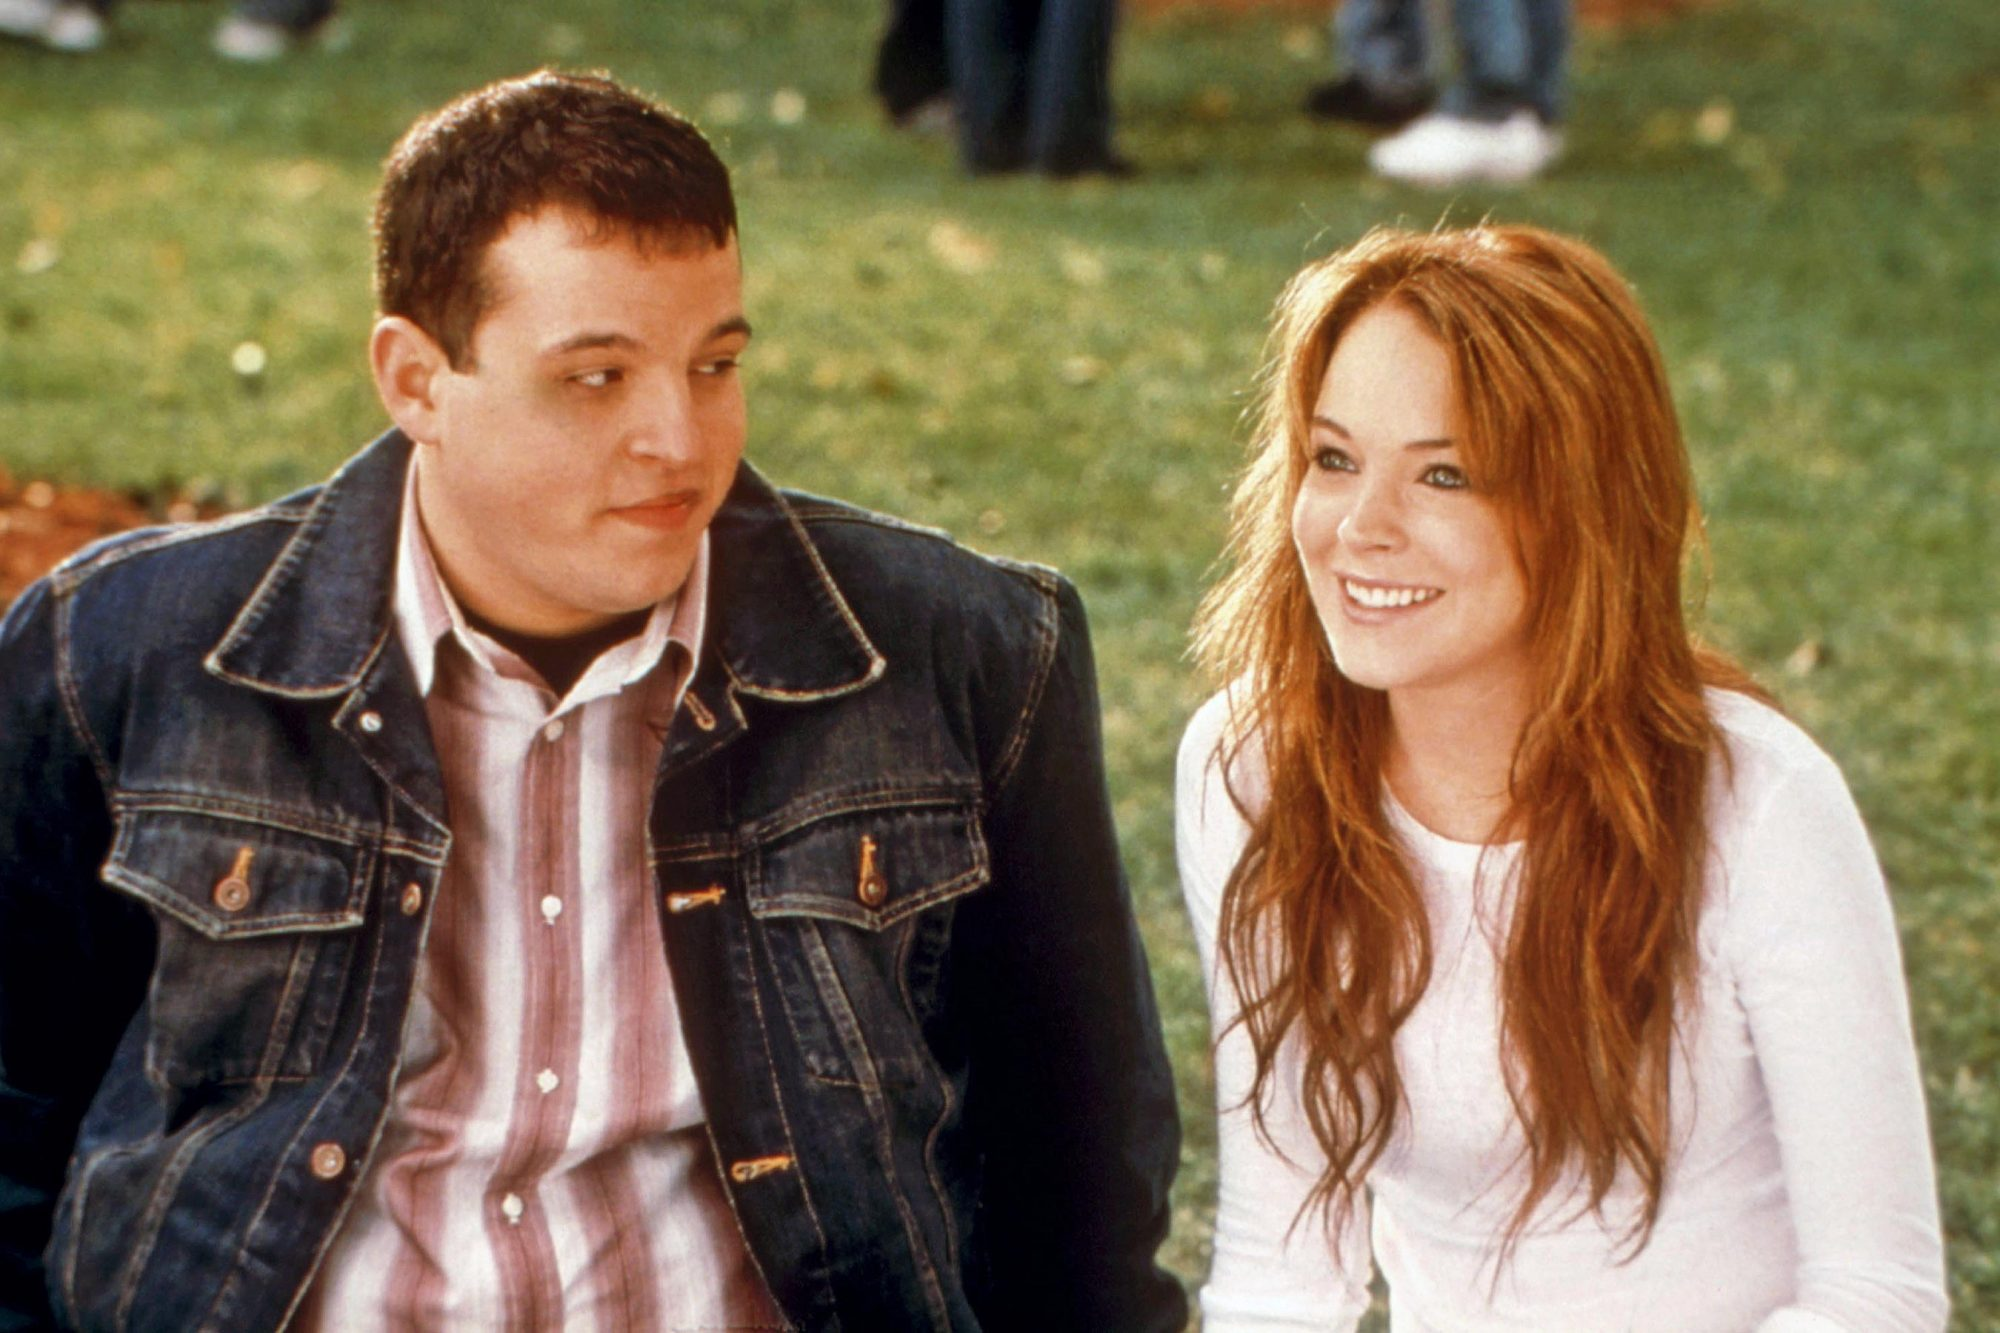 MEAN GIRLS, Daniel Franzese, Lindsay Lohan, 2004.u00A9Paramount/courtesy Everett Collection